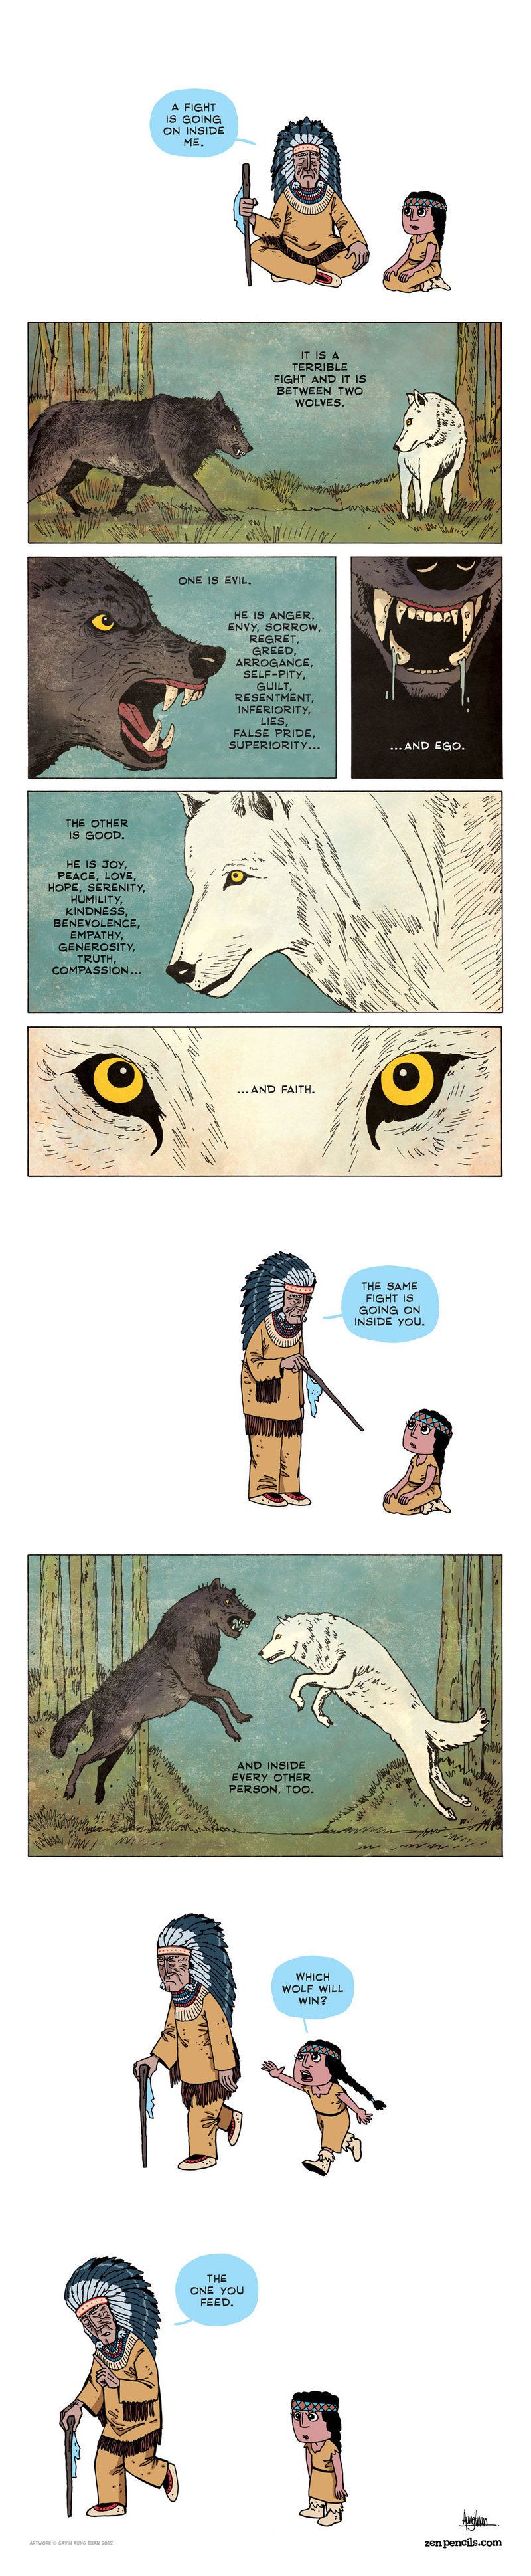 Zen Pencils - Two Wolves